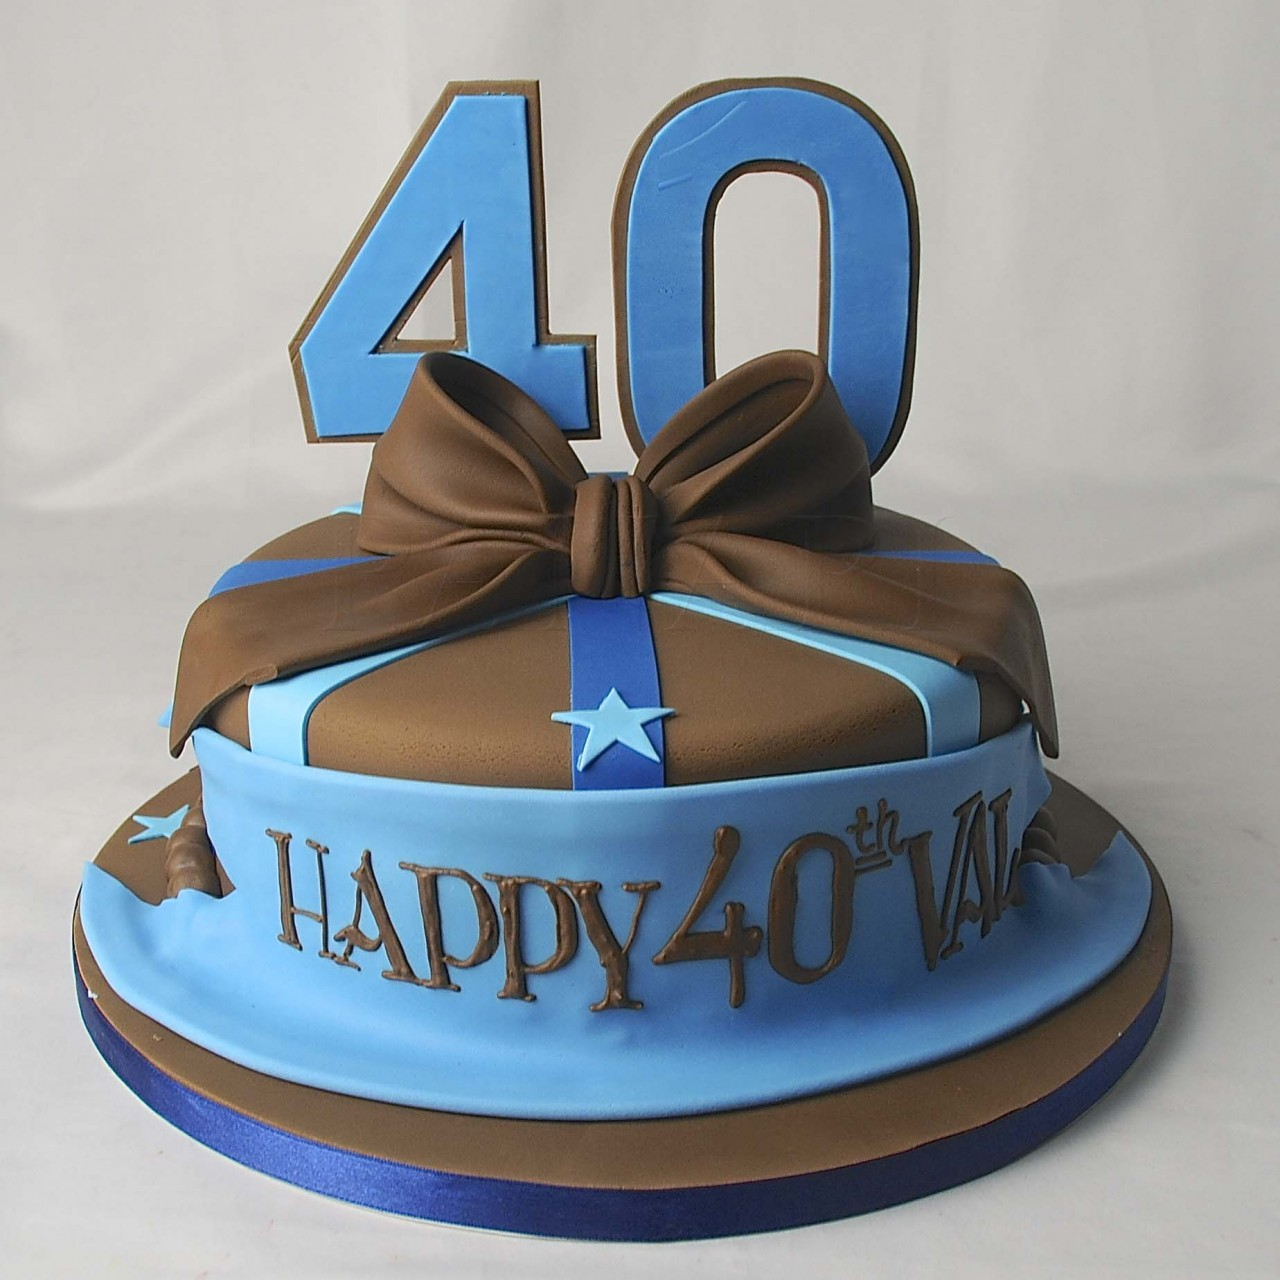 11 40th Birthday Cakes For Guys Photo Funny 40th Birthday Cake Ideas For Men Men 40th Birthday Cake Ideas And 40th Birthday Sheet Cake Ideas For Men Snackncake